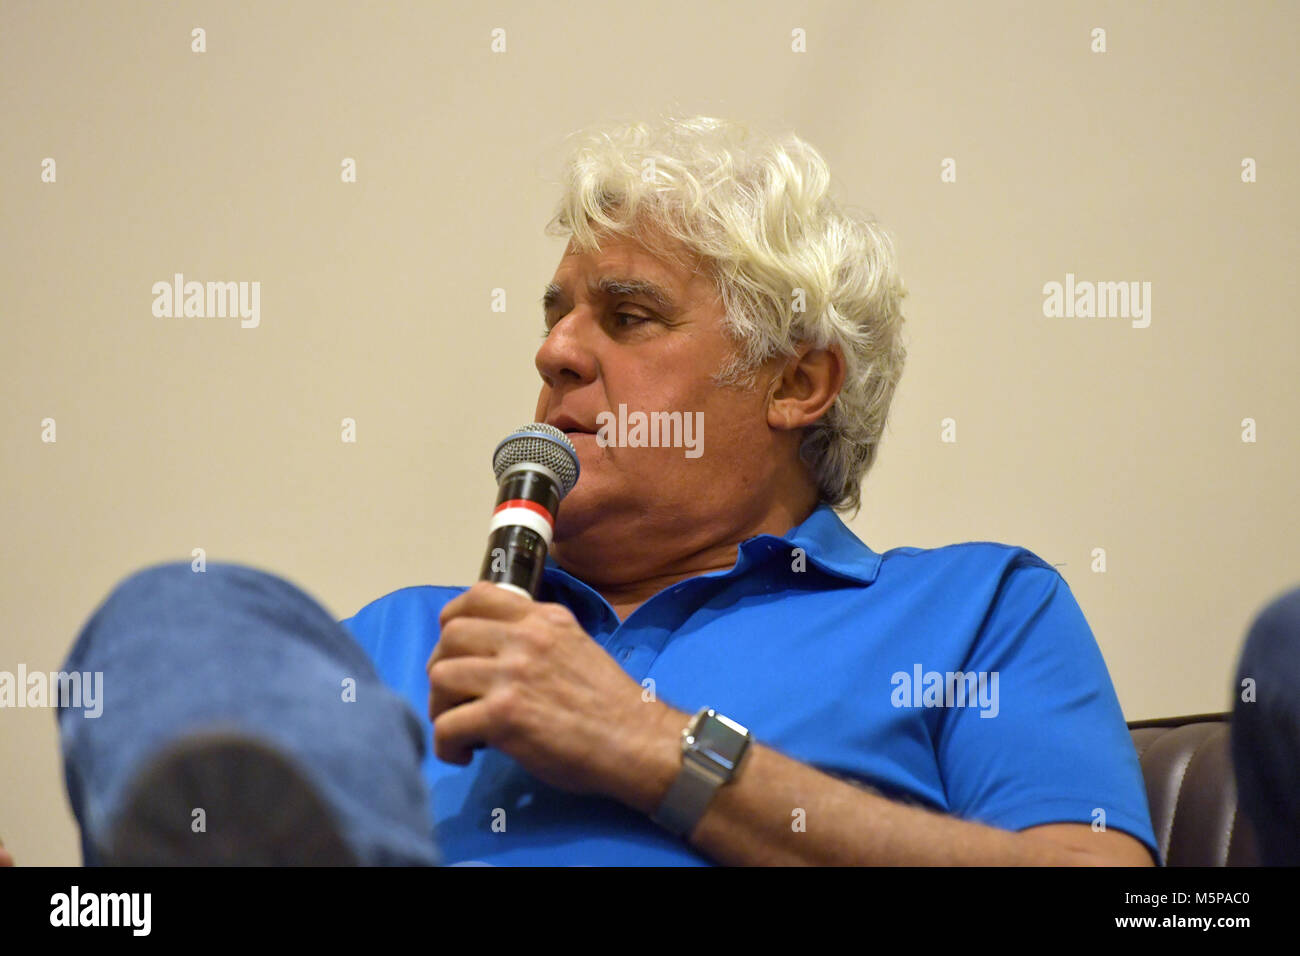 jay leno car stock photos jay leno car stock images alamy. Black Bedroom Furniture Sets. Home Design Ideas